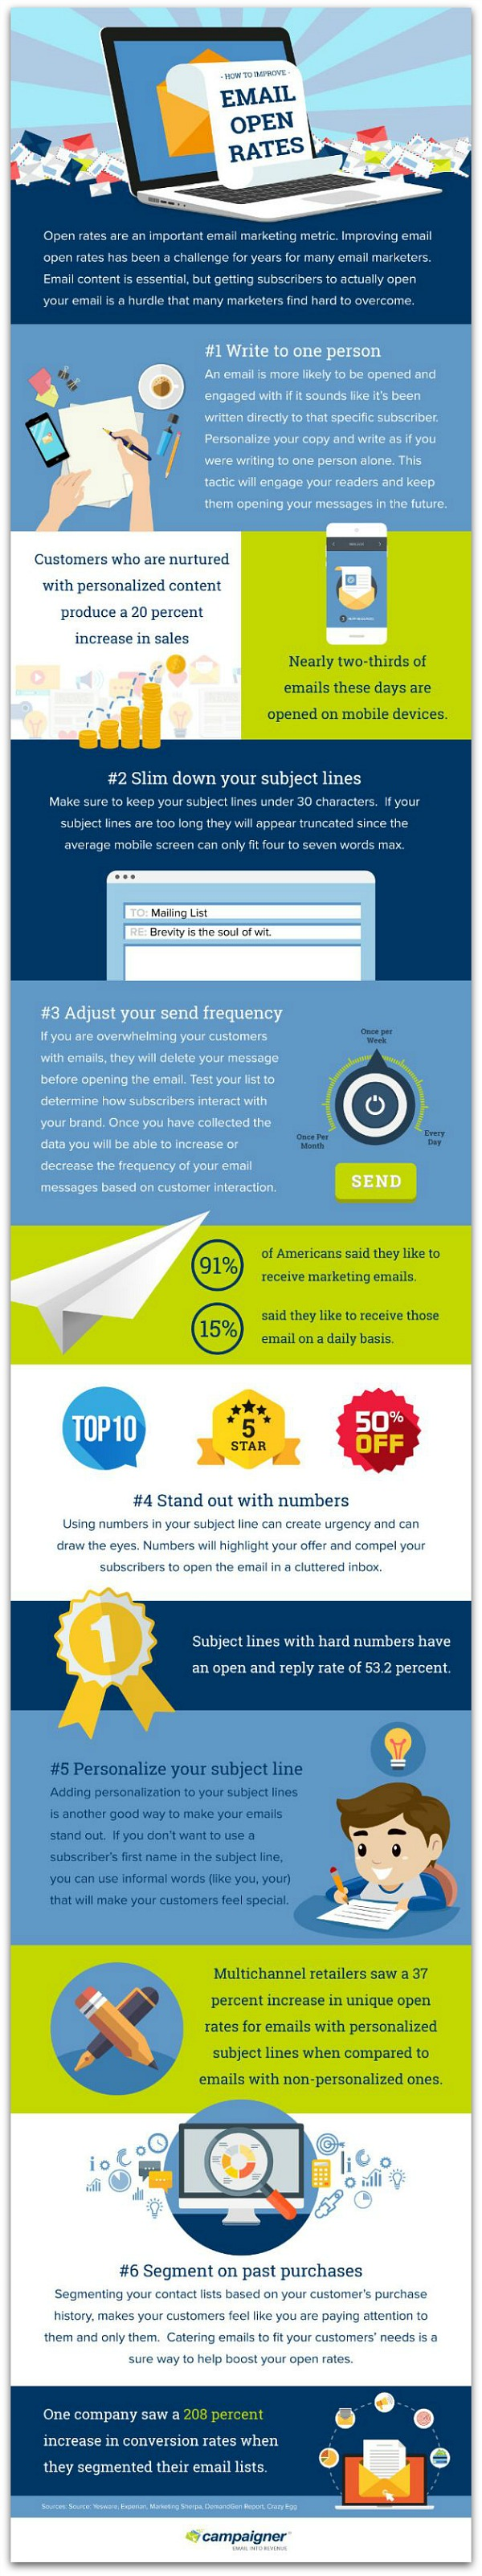 Infographic: Email Open Rate Optimization